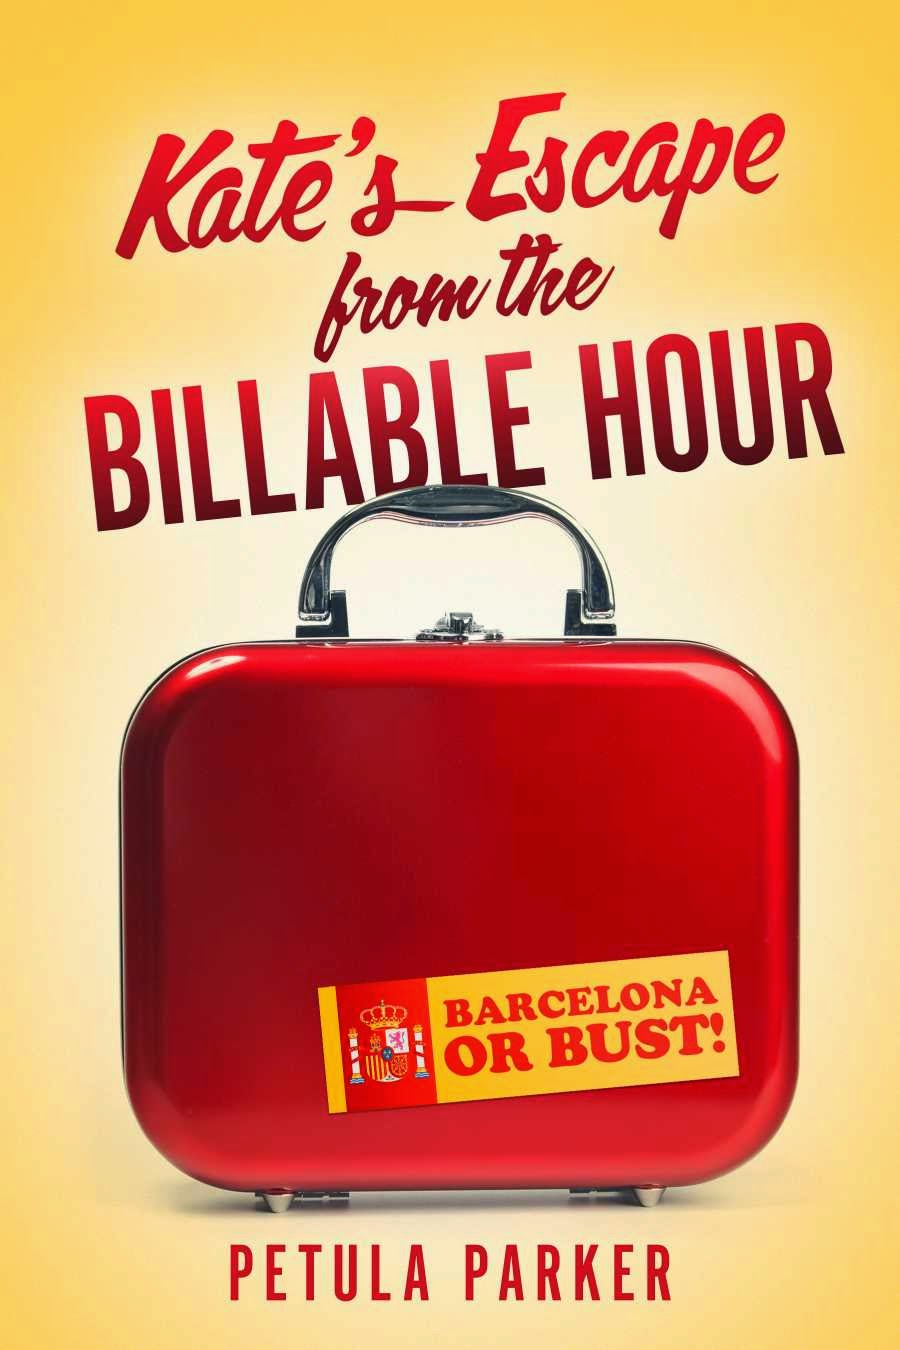 Kate's Escape from the Billable Hour – Petula Parker